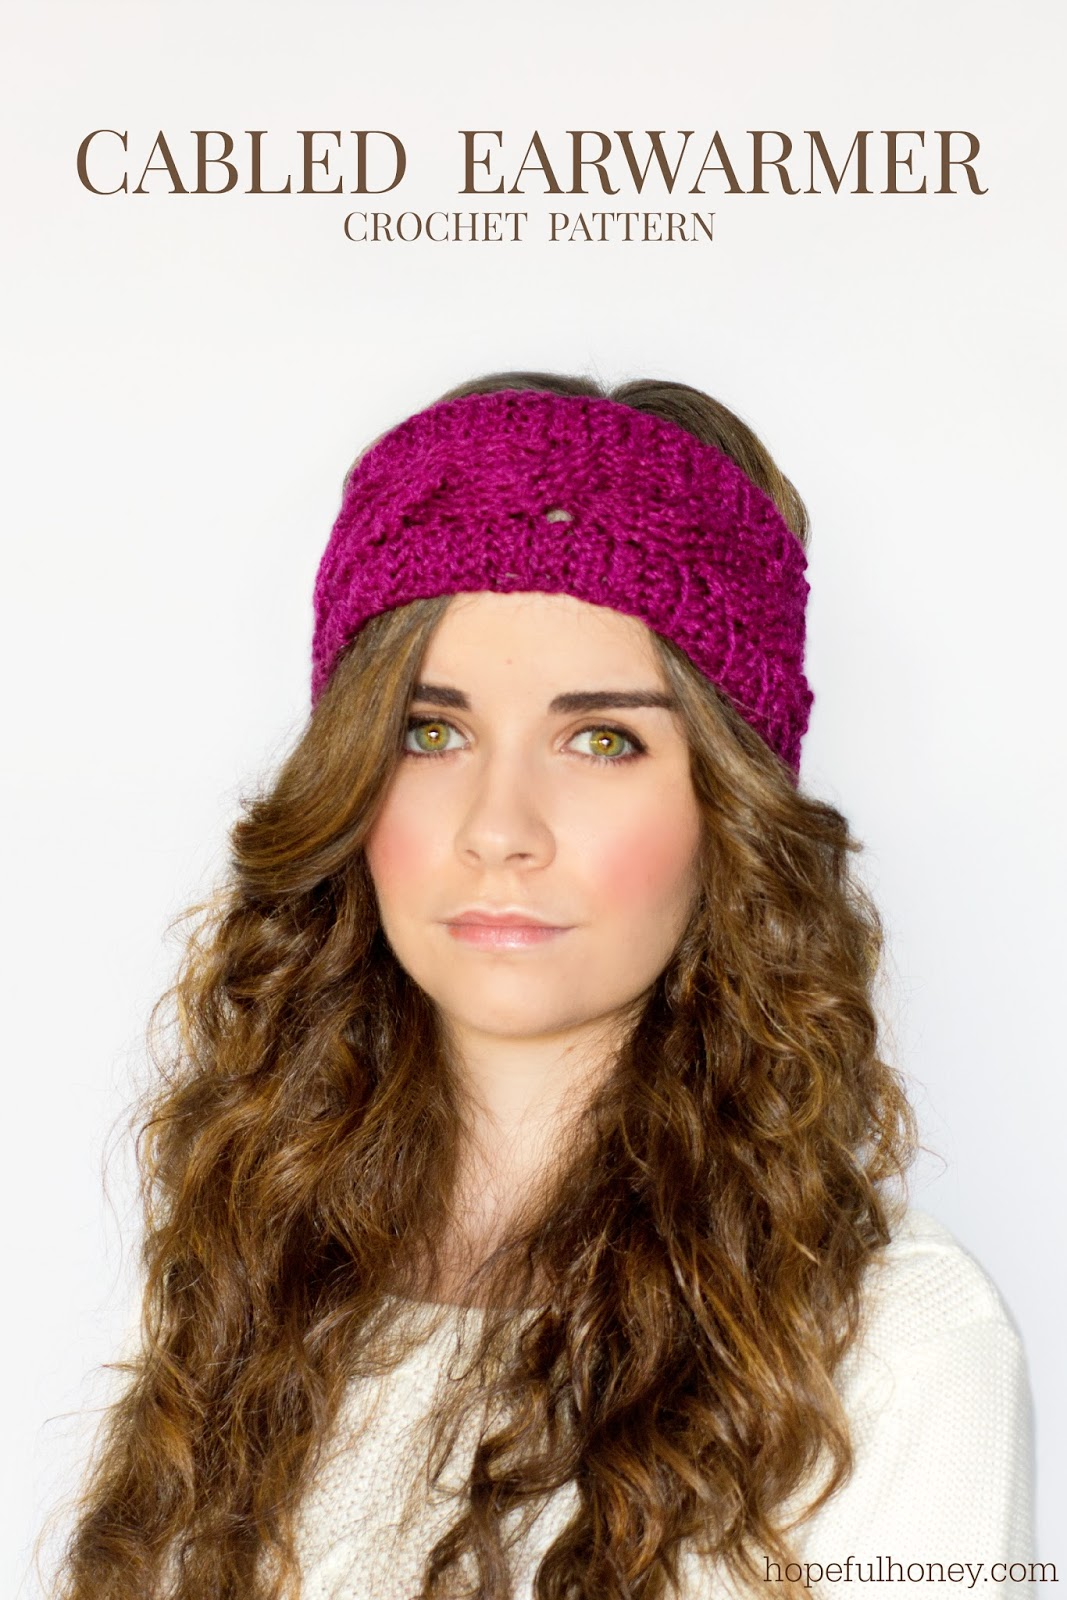 Free Crochet Pattern Headband Ear Warmer Button : Hopeful Honey Craft, Crochet, Create: Cabled Earwarmer ...